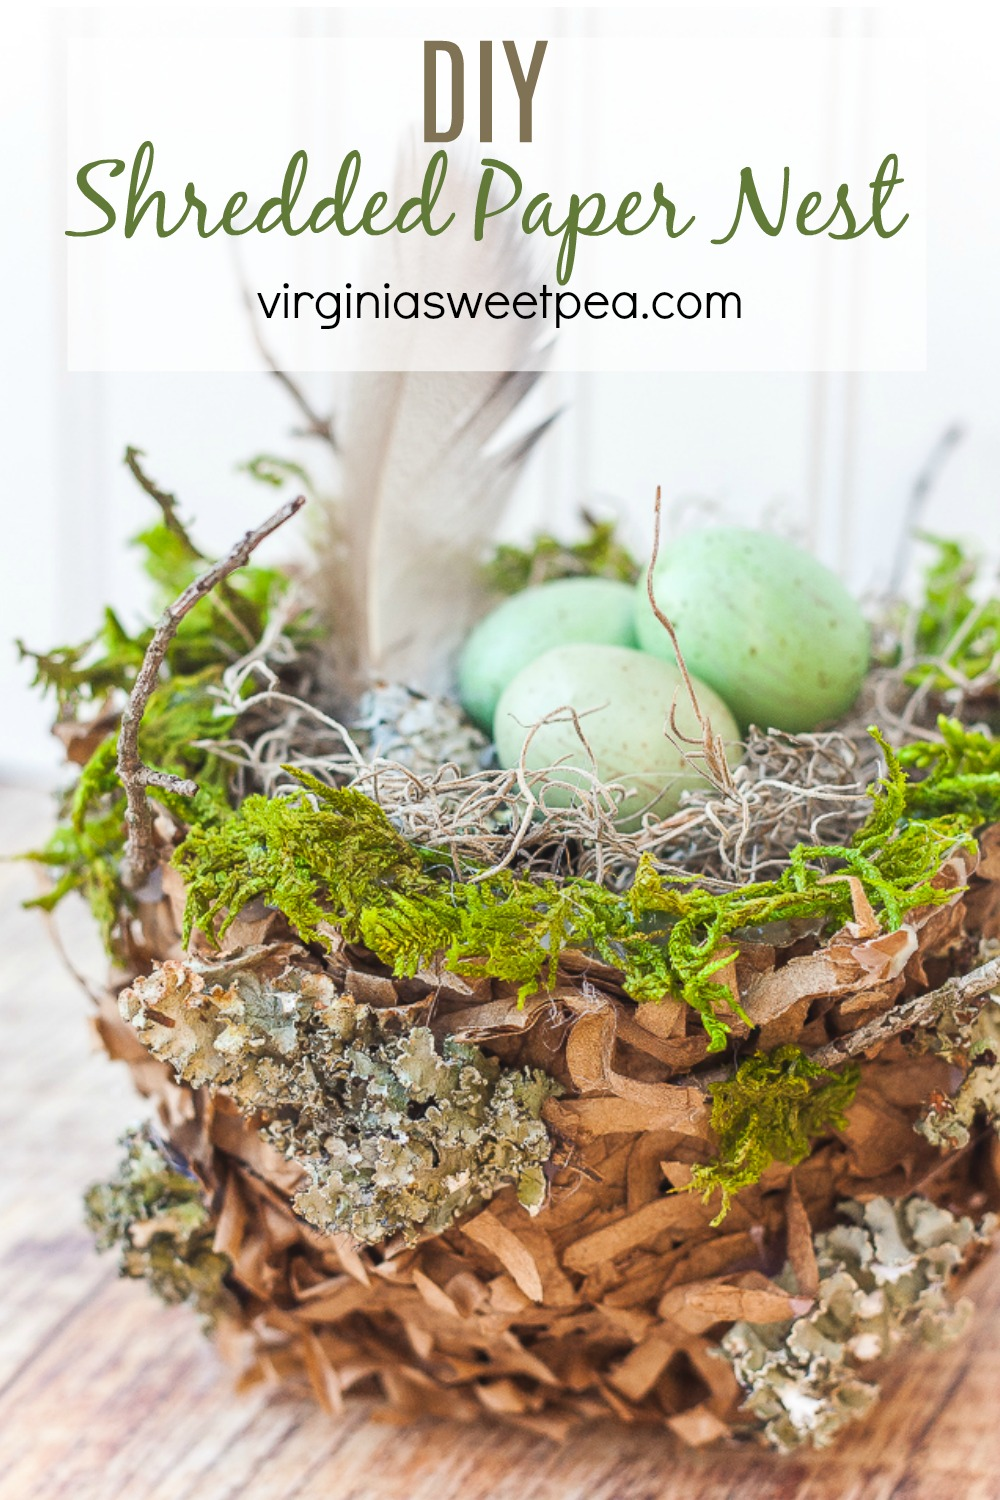 DIY Shredded Paper Nest - Make a realistic spring nest to use for decorating with shredded paper bags. Follow the step-by-step tutorial to make a nest to use in your home. #diynest #howtomakeanest #springnest #shreddedpapernest via @spaula